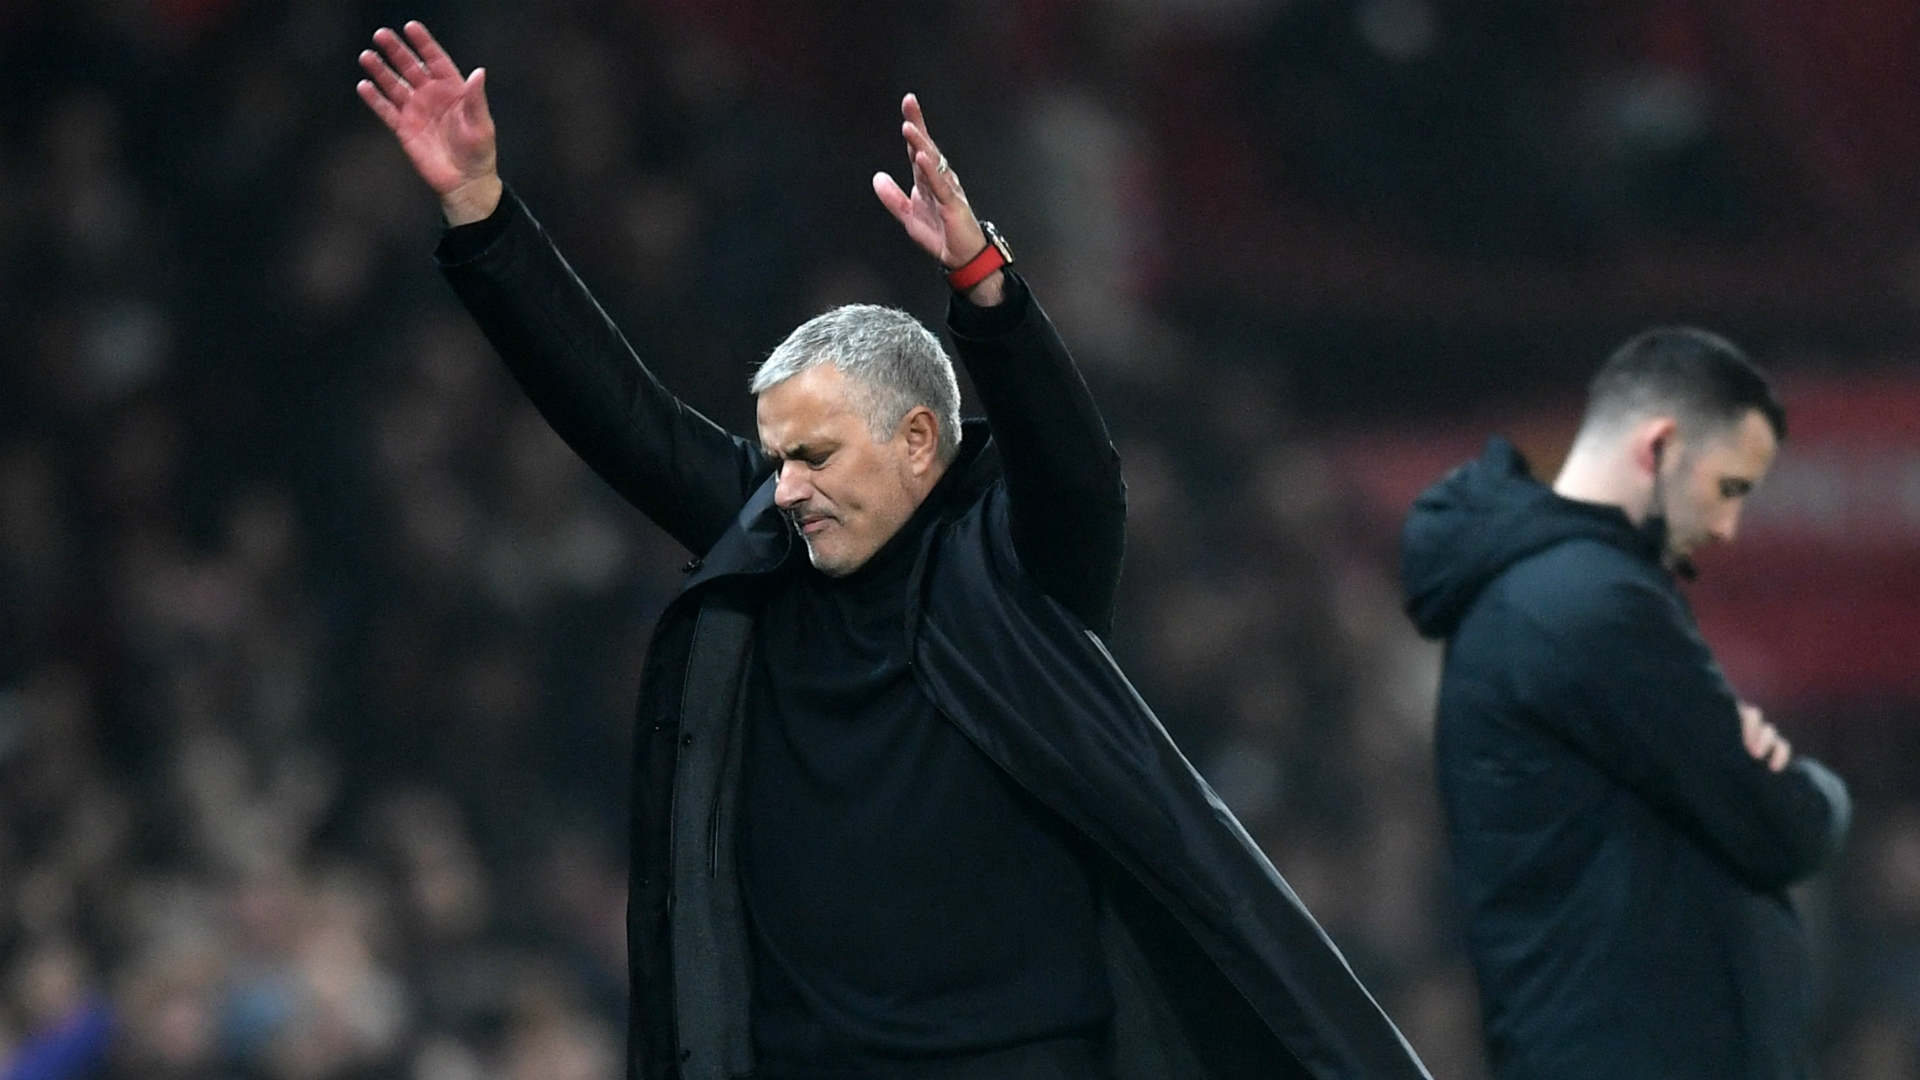 Jose Mourinho- Manchester United draws 2-2 to Arsenal